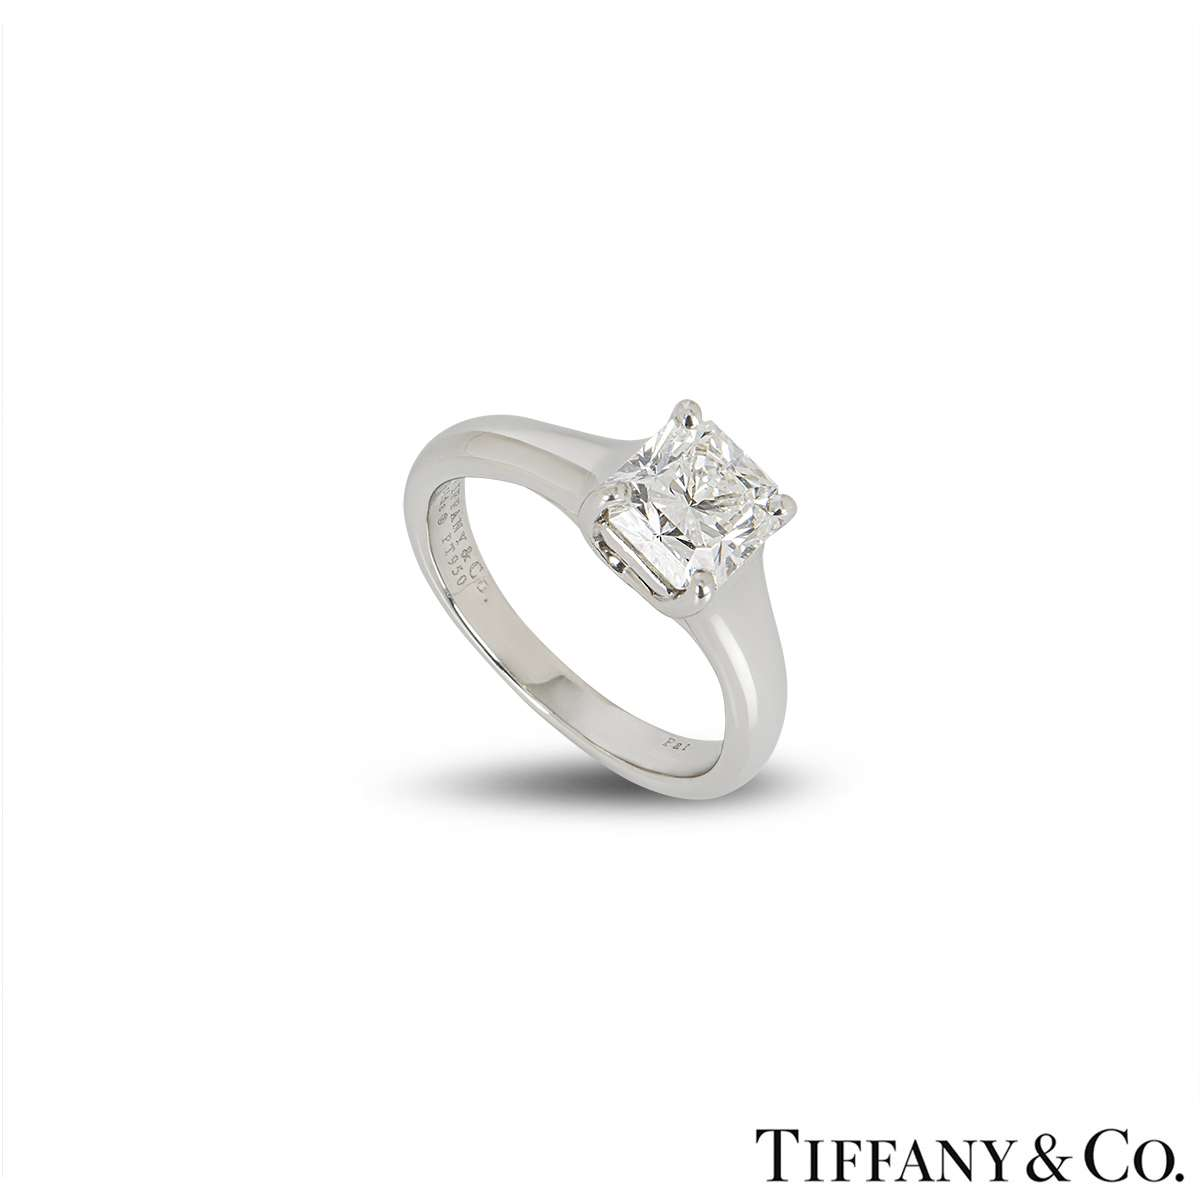 Tiffany & Co. Platinum Diamond Lucida Ring 1.10ct G/VVS1